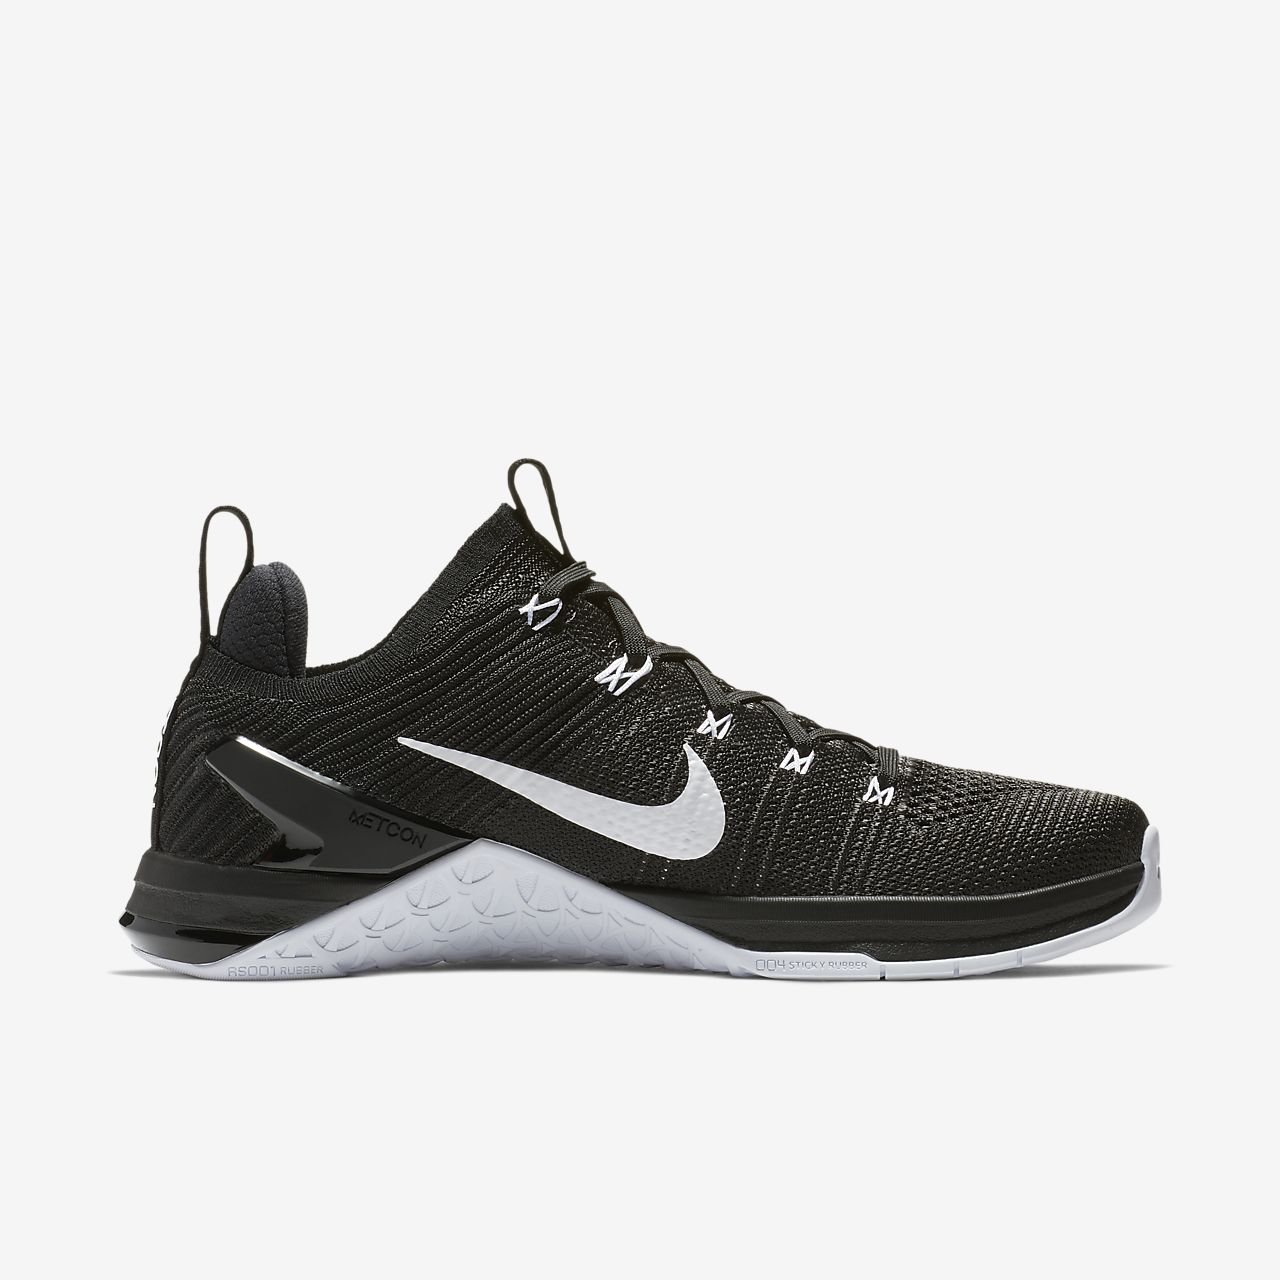 Nike Metcon DSX Flyknit Sneakers buy cheap clearance cheap fashionable looking for online DgEbd